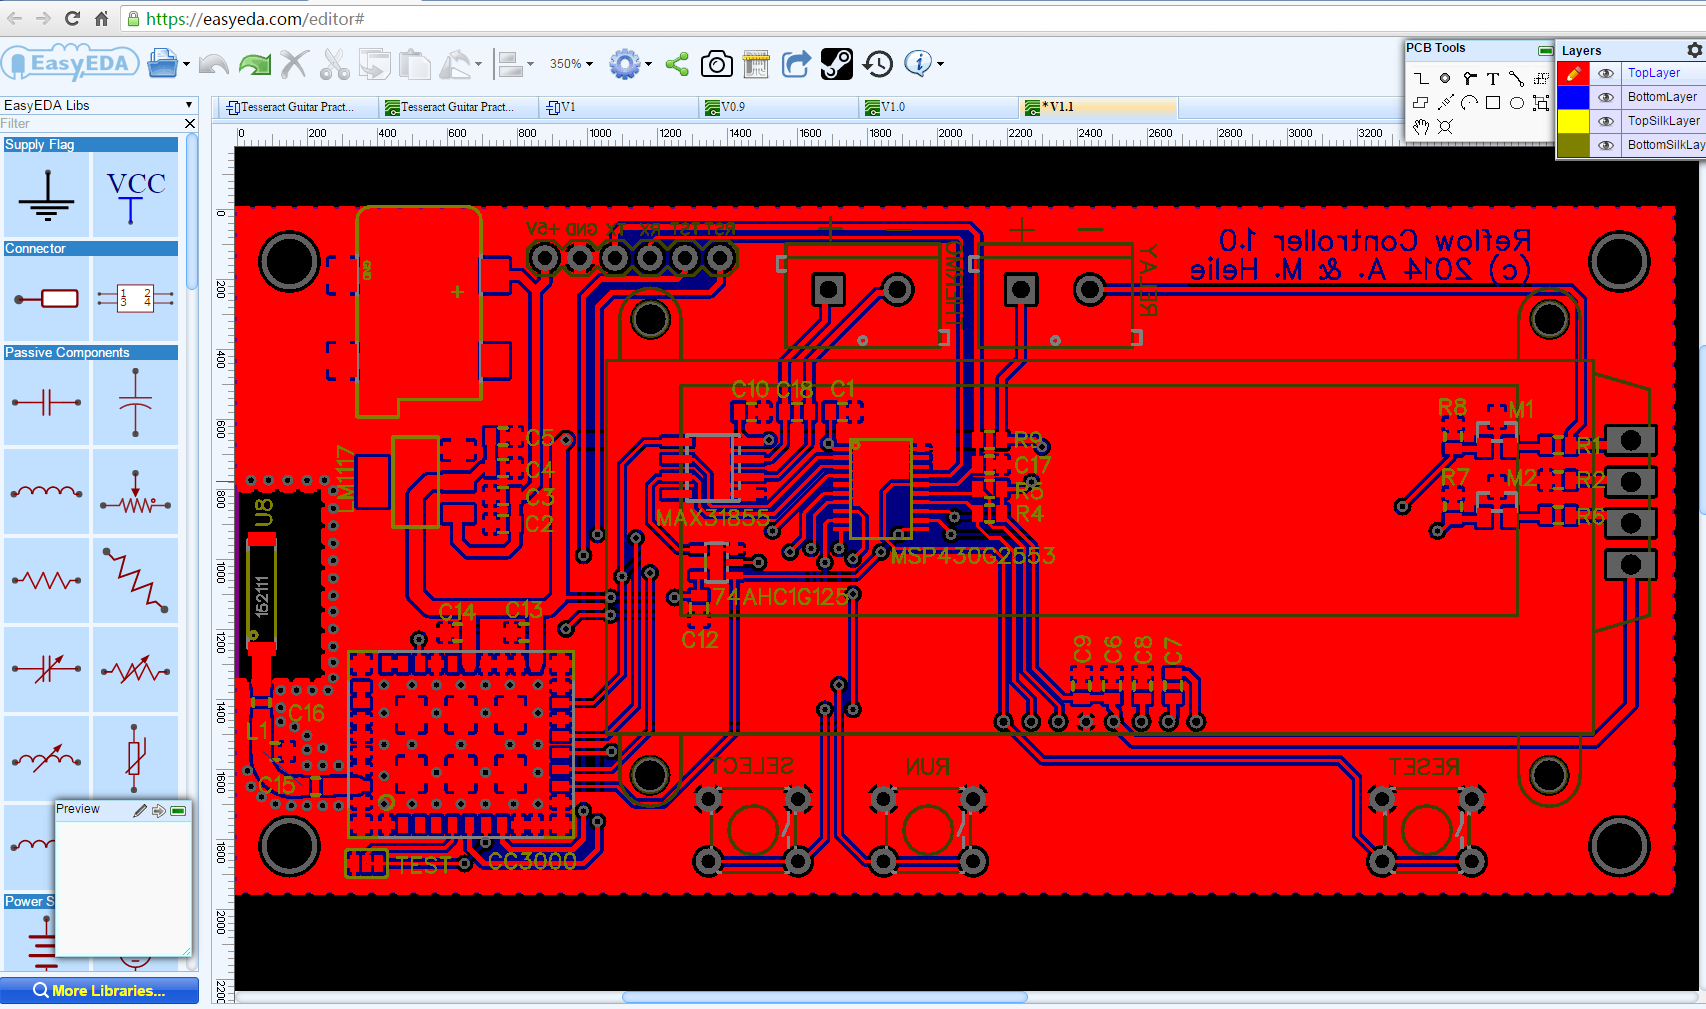 Circuit simulator and PCB design software - EasyEDA - HowToMechatronics